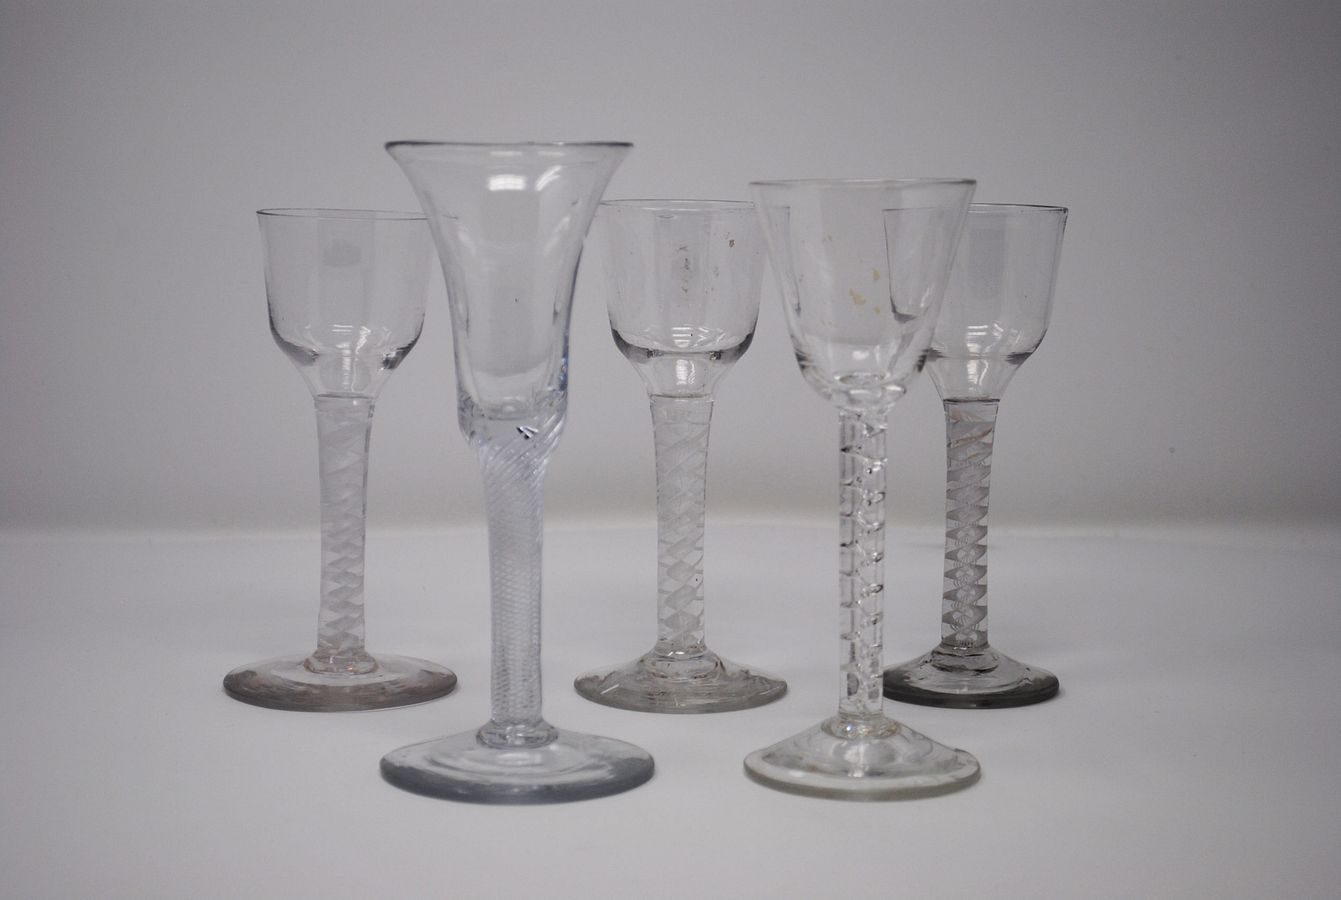 New acquisitions of 18th century stemware